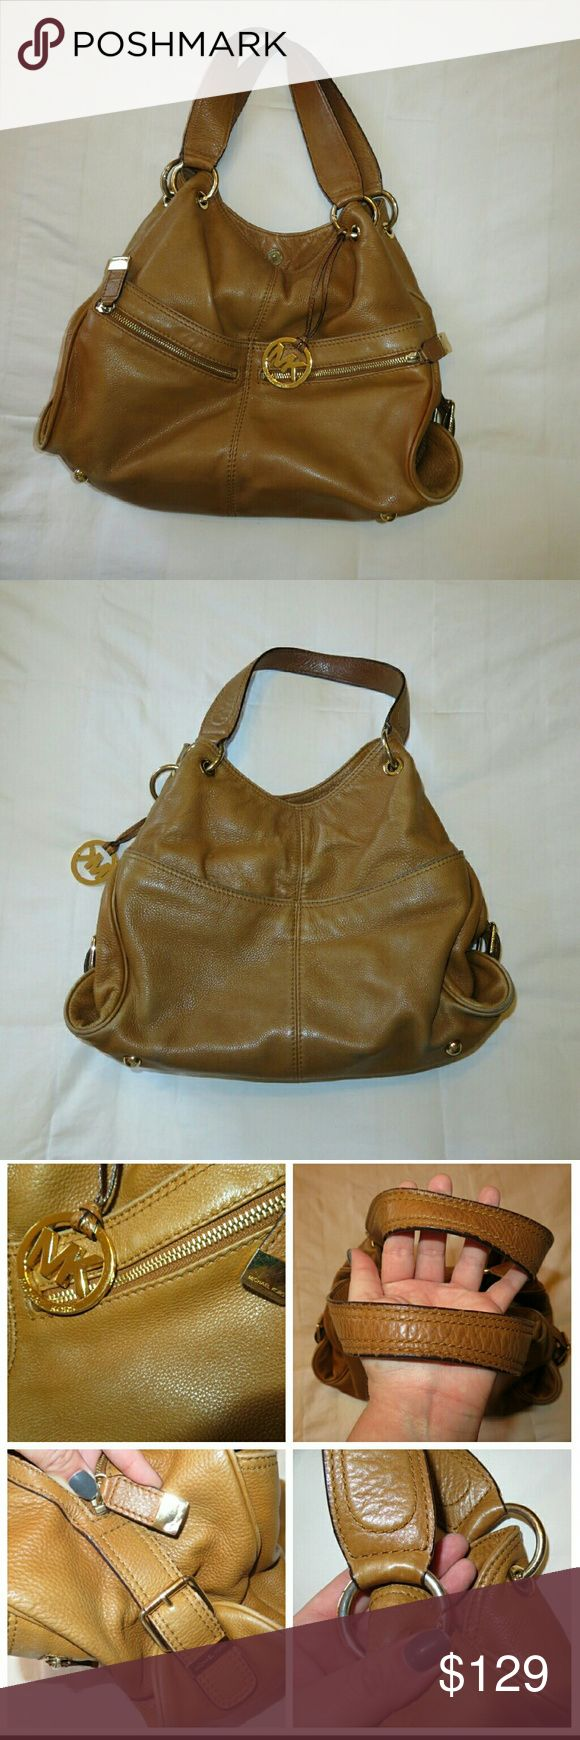 Leather Michael Kors bag Price is firm. Still thinking about holding on to bag. It goes with everything and with all seasons.  Gorgeous and timeless MK leather bag with gold hardware. Tons of organized storage on inside and outside with Convenient Pockets and zippers on outer front and back. Detachable strap.  Good condition. Has hardware scratches and stains on interior but nothing noticeable. Stitching and overall condition of bag is good.  I Have used leather cleaner and moisturizer to…